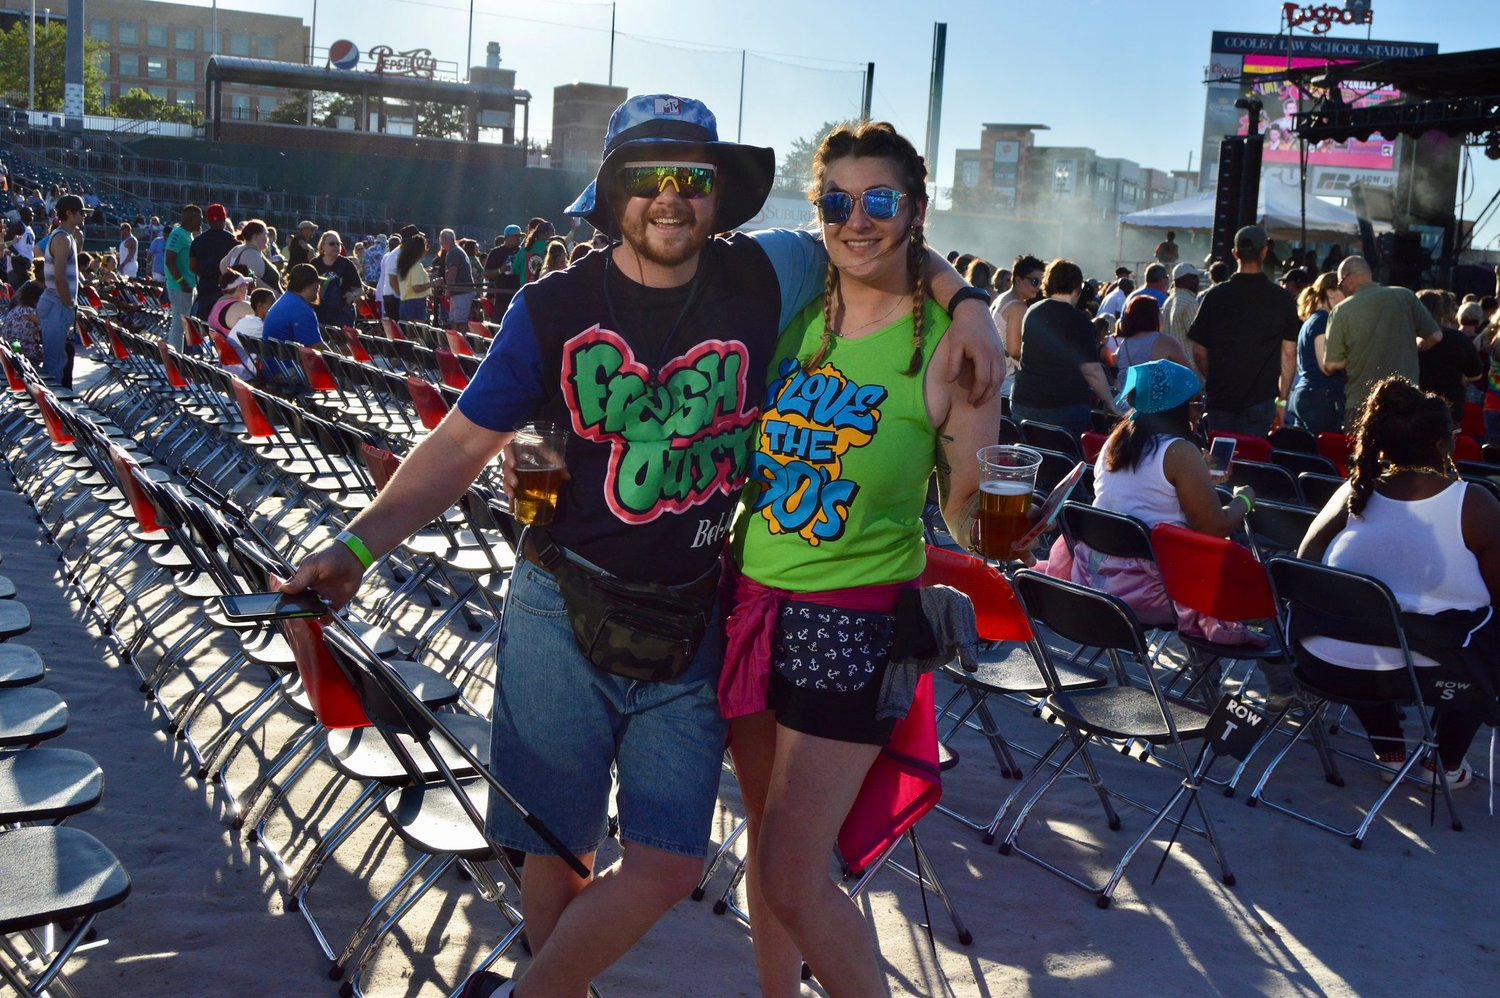 Trey Rudloff (left) and Brittney Kendziora brought back fanny packs and neon for Friday's concert.